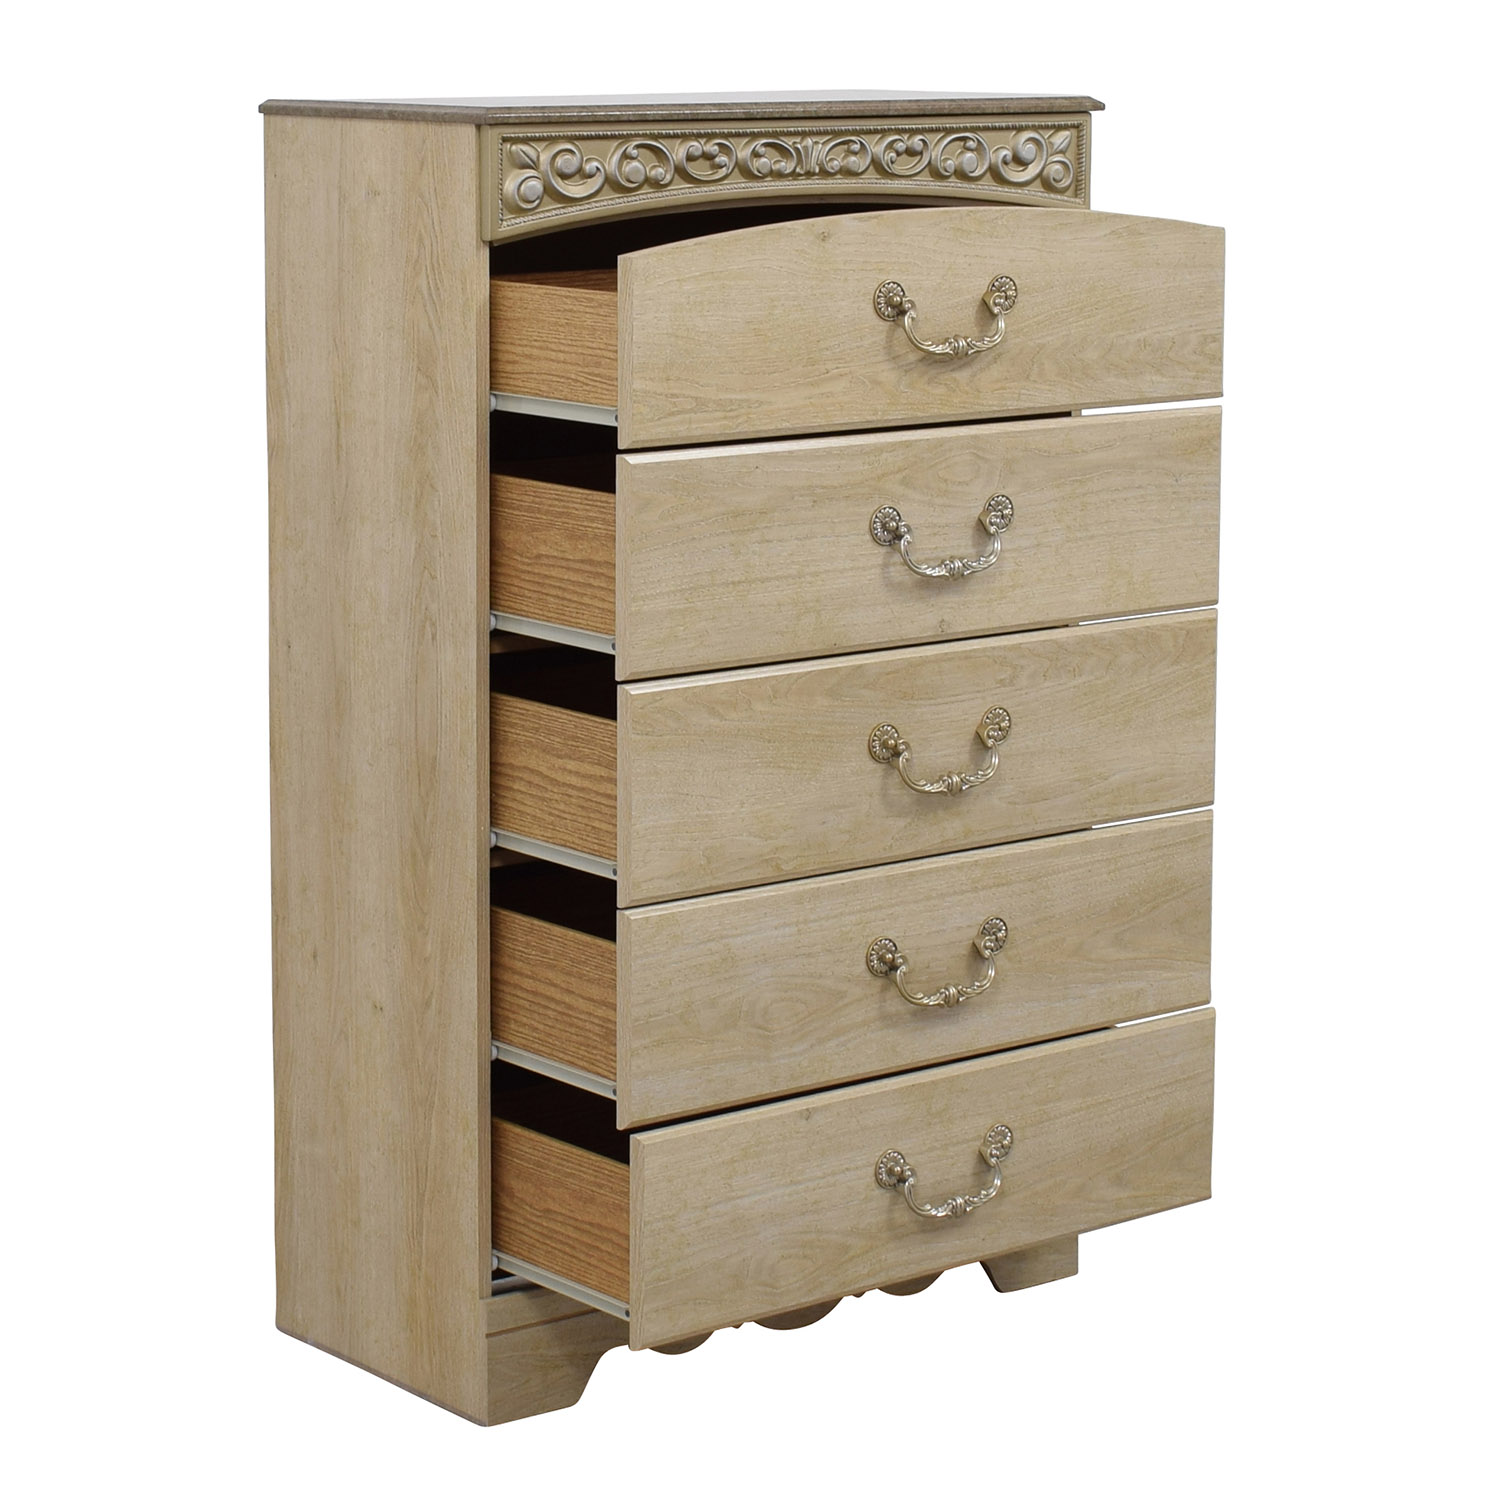 41 off ashley furniture catalina chest of drawers storage. Black Bedroom Furniture Sets. Home Design Ideas